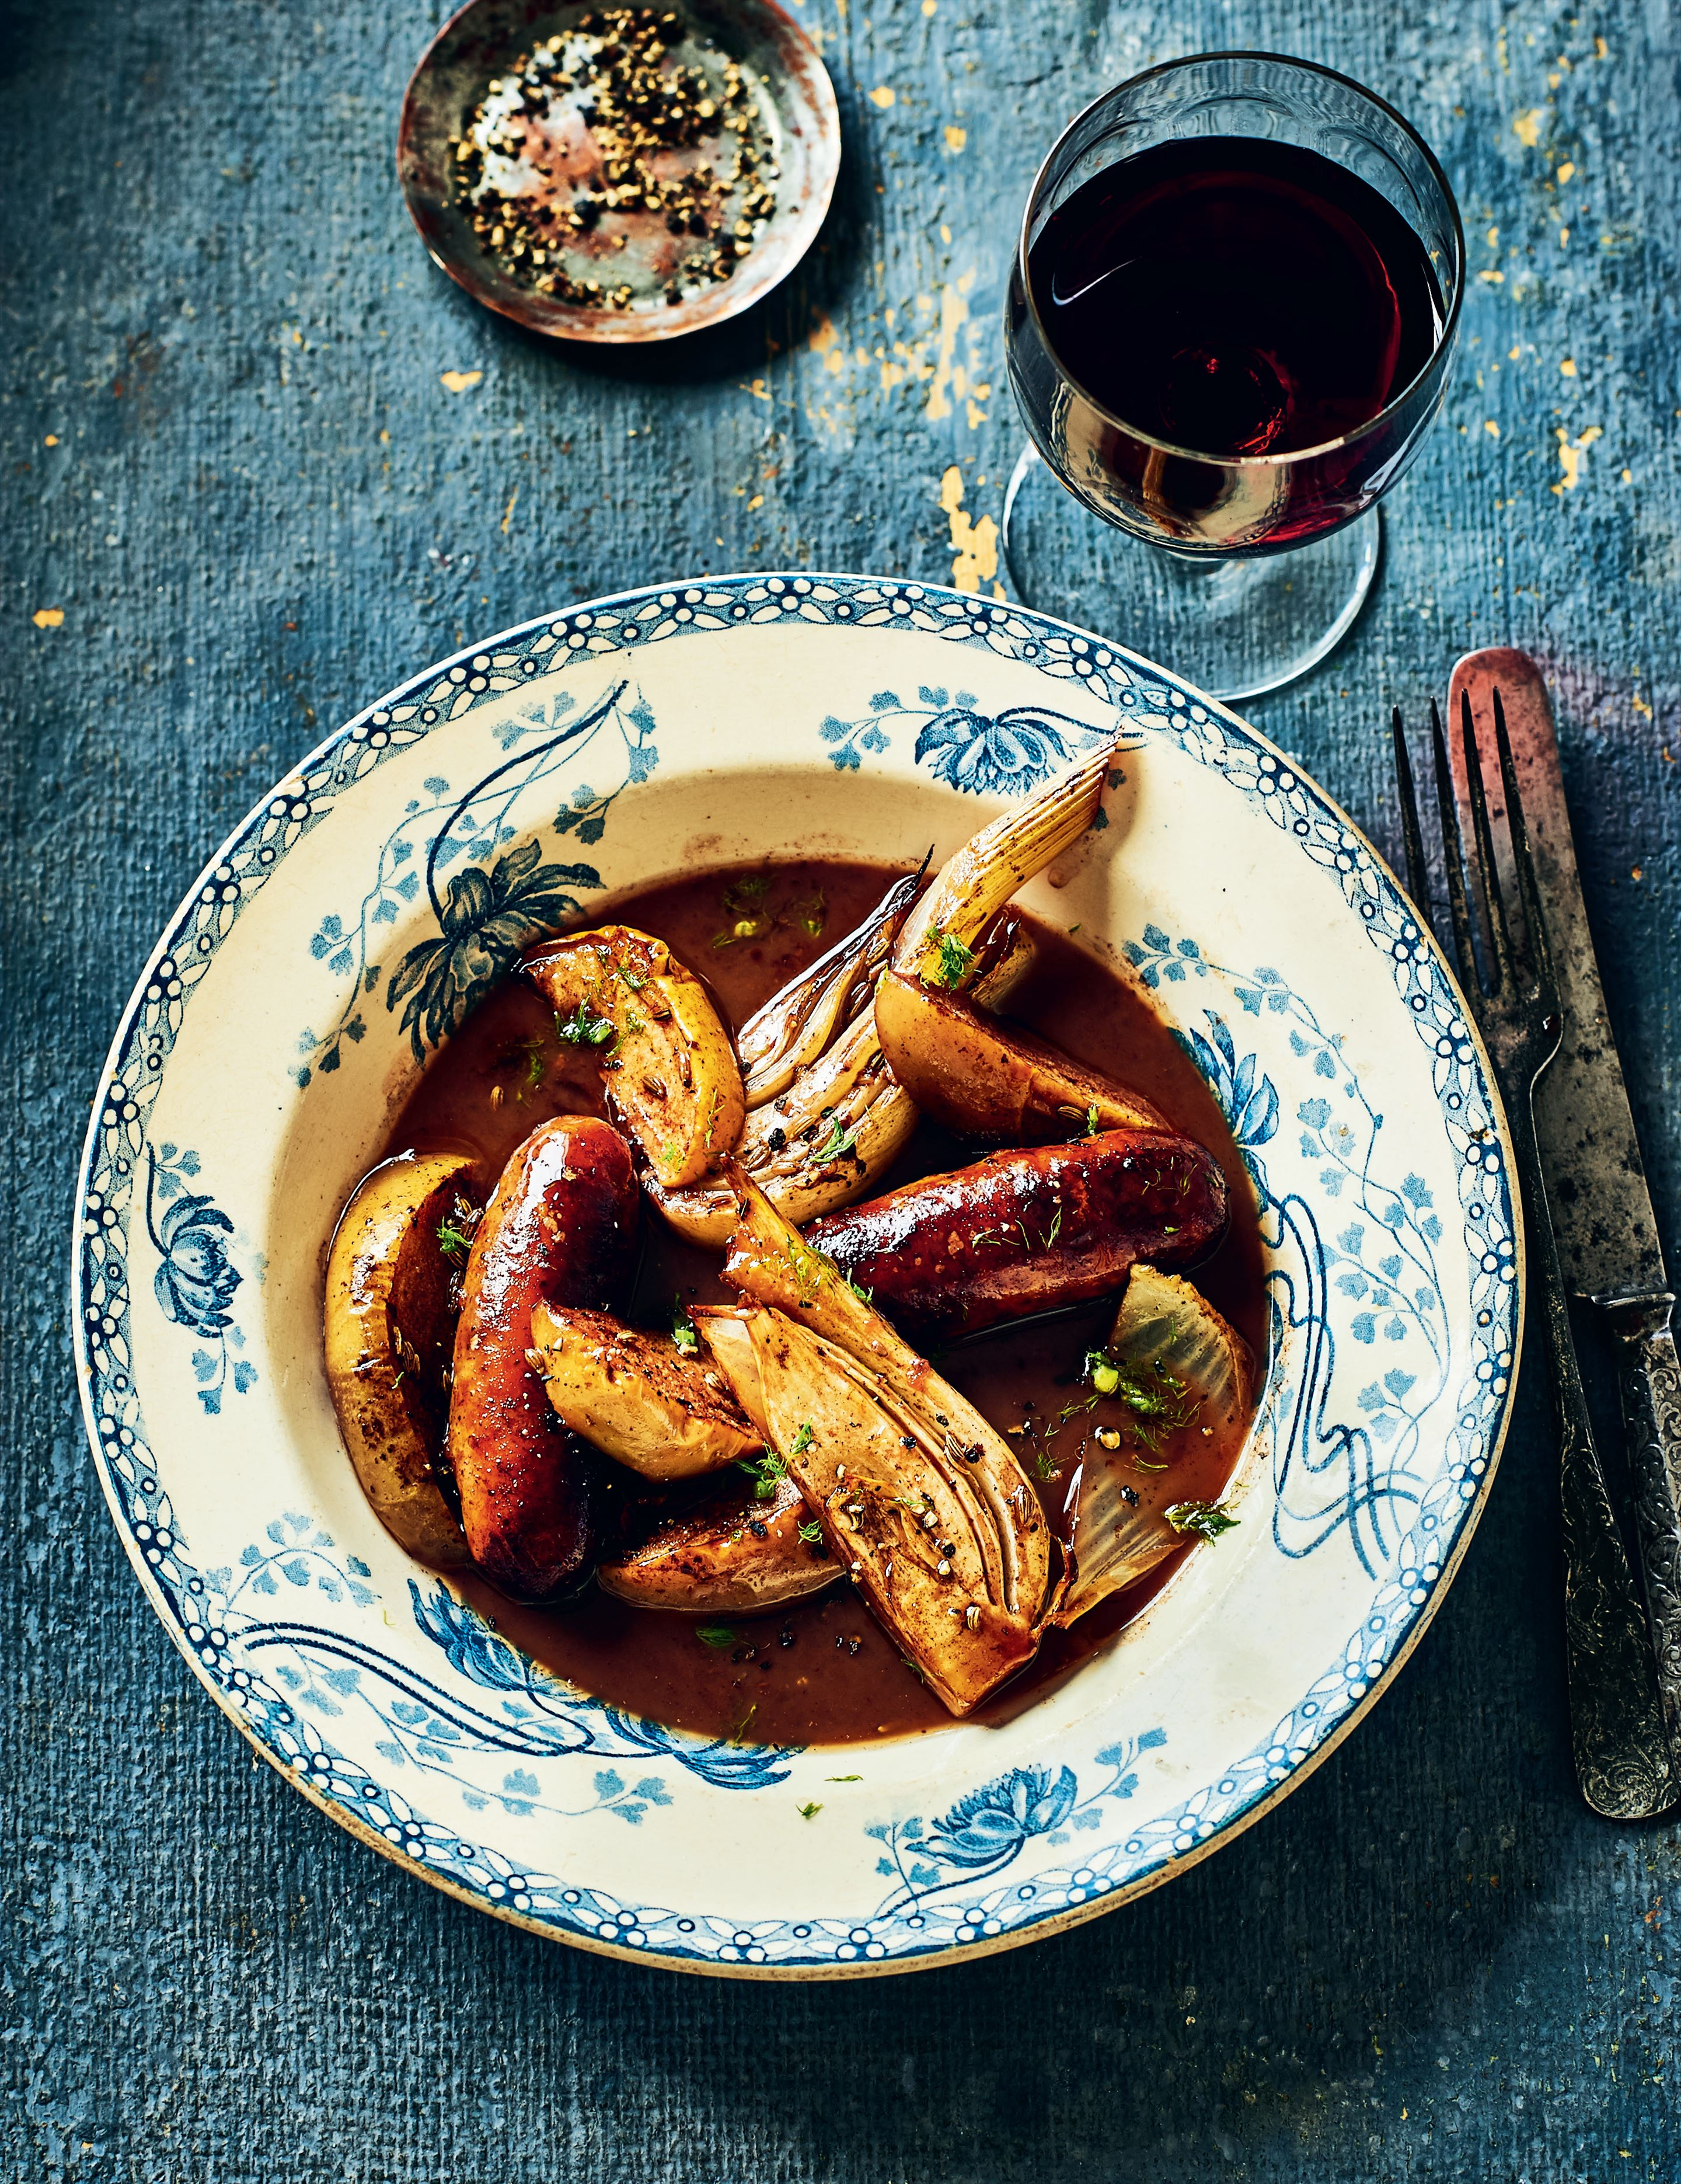 Pork sausages with fennel, apples and red wine gravy